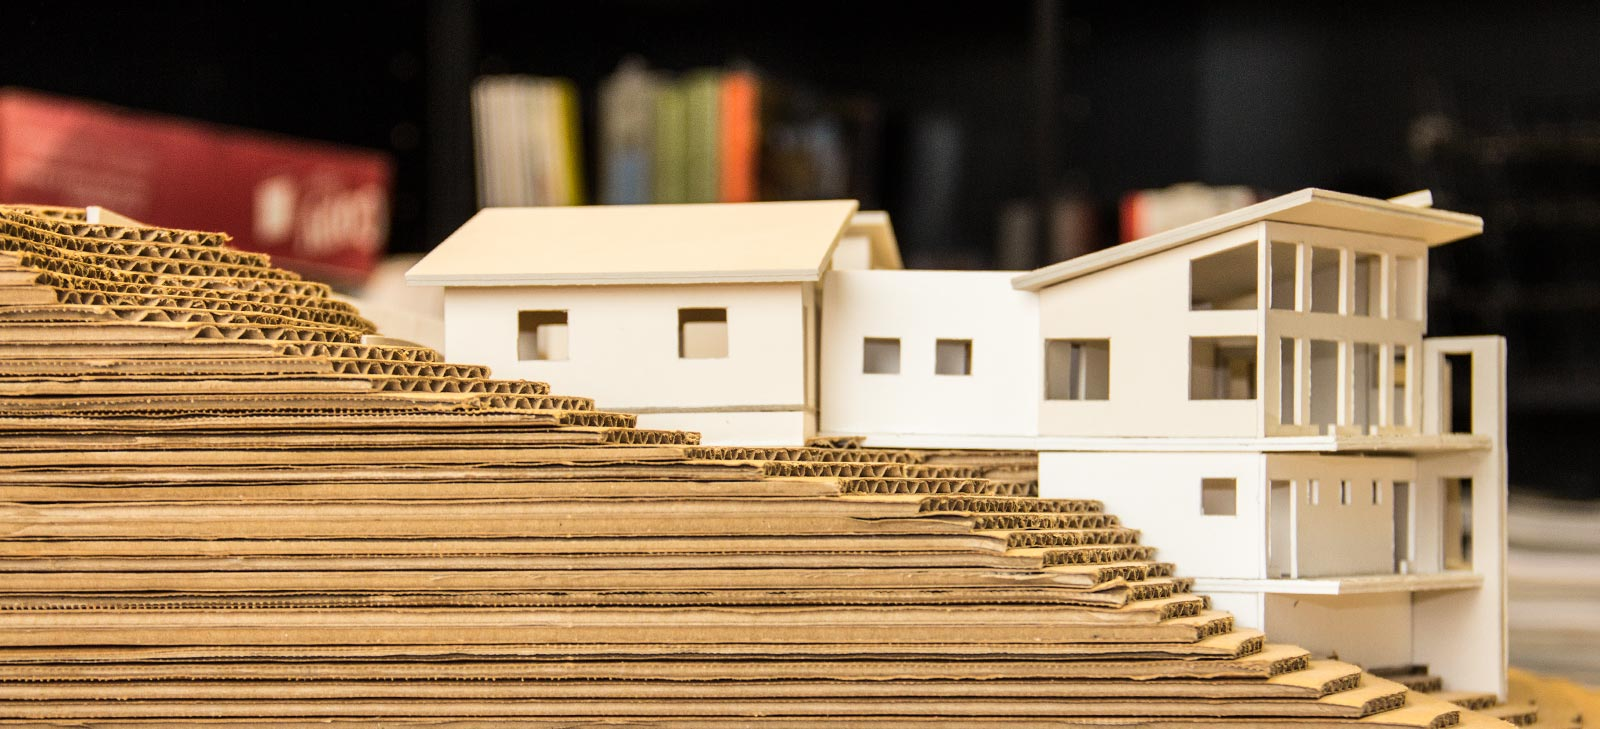 bend architectural model